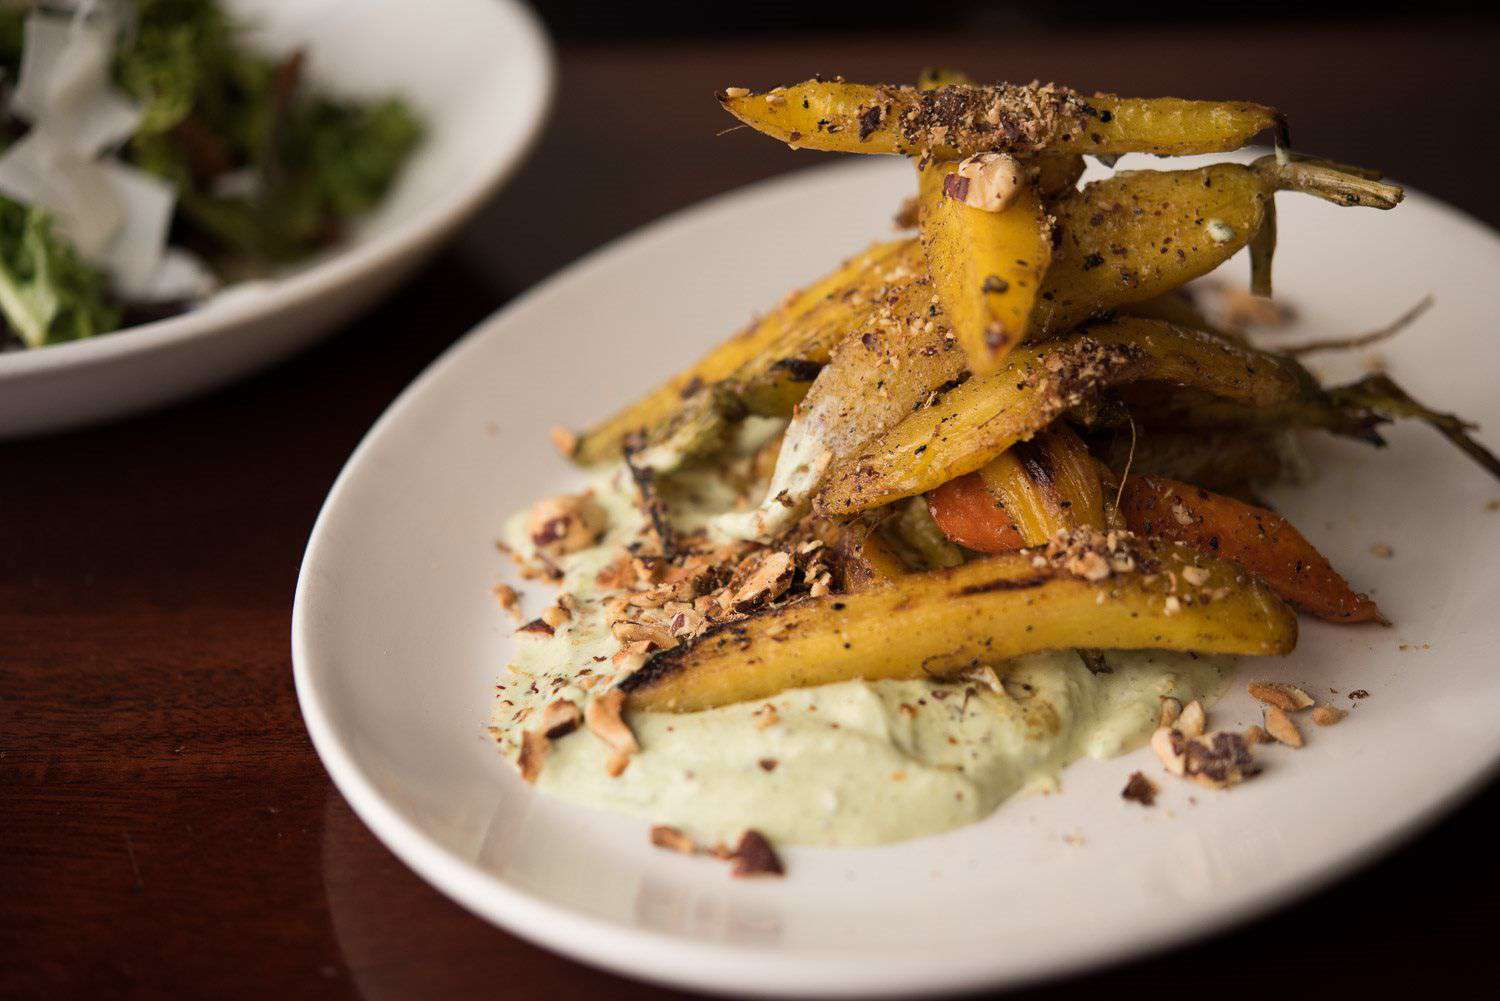 Roasted carrots onto of a pale green sauce, topped with crushed nuts